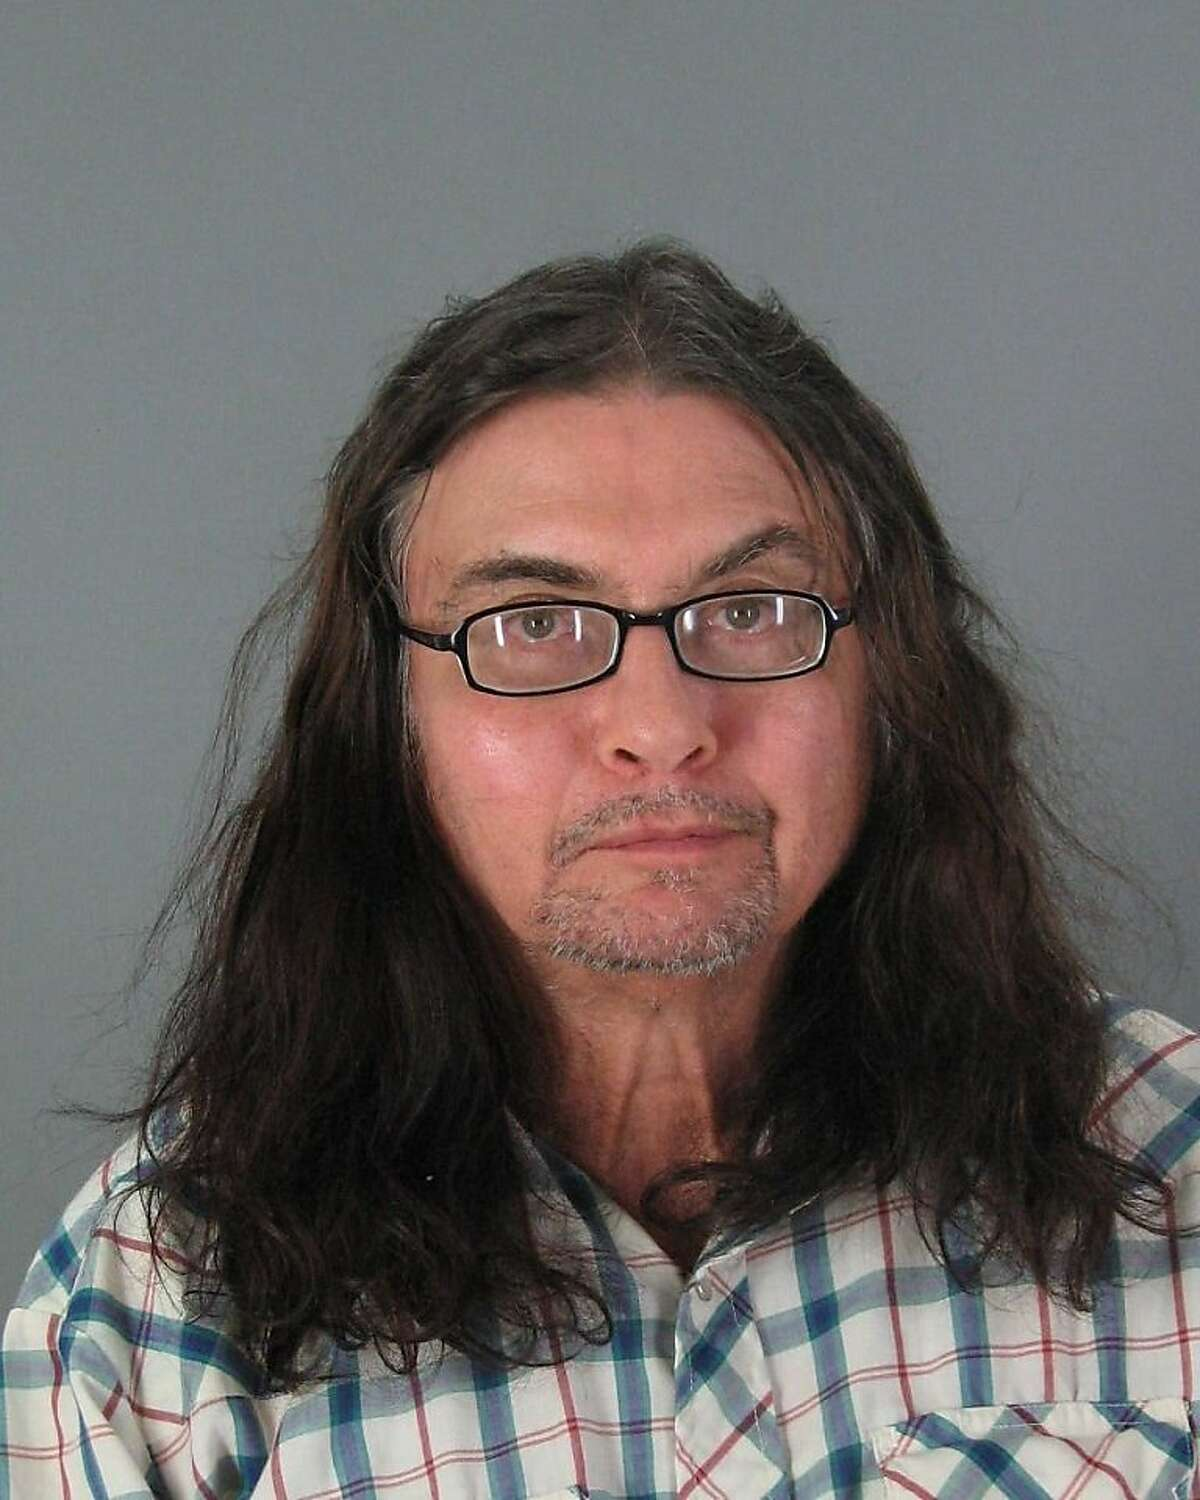 Samuel Kioskli, charged with swapping $200,000 in fake bills for real cash at ATMs in San Francisco and Daly City.